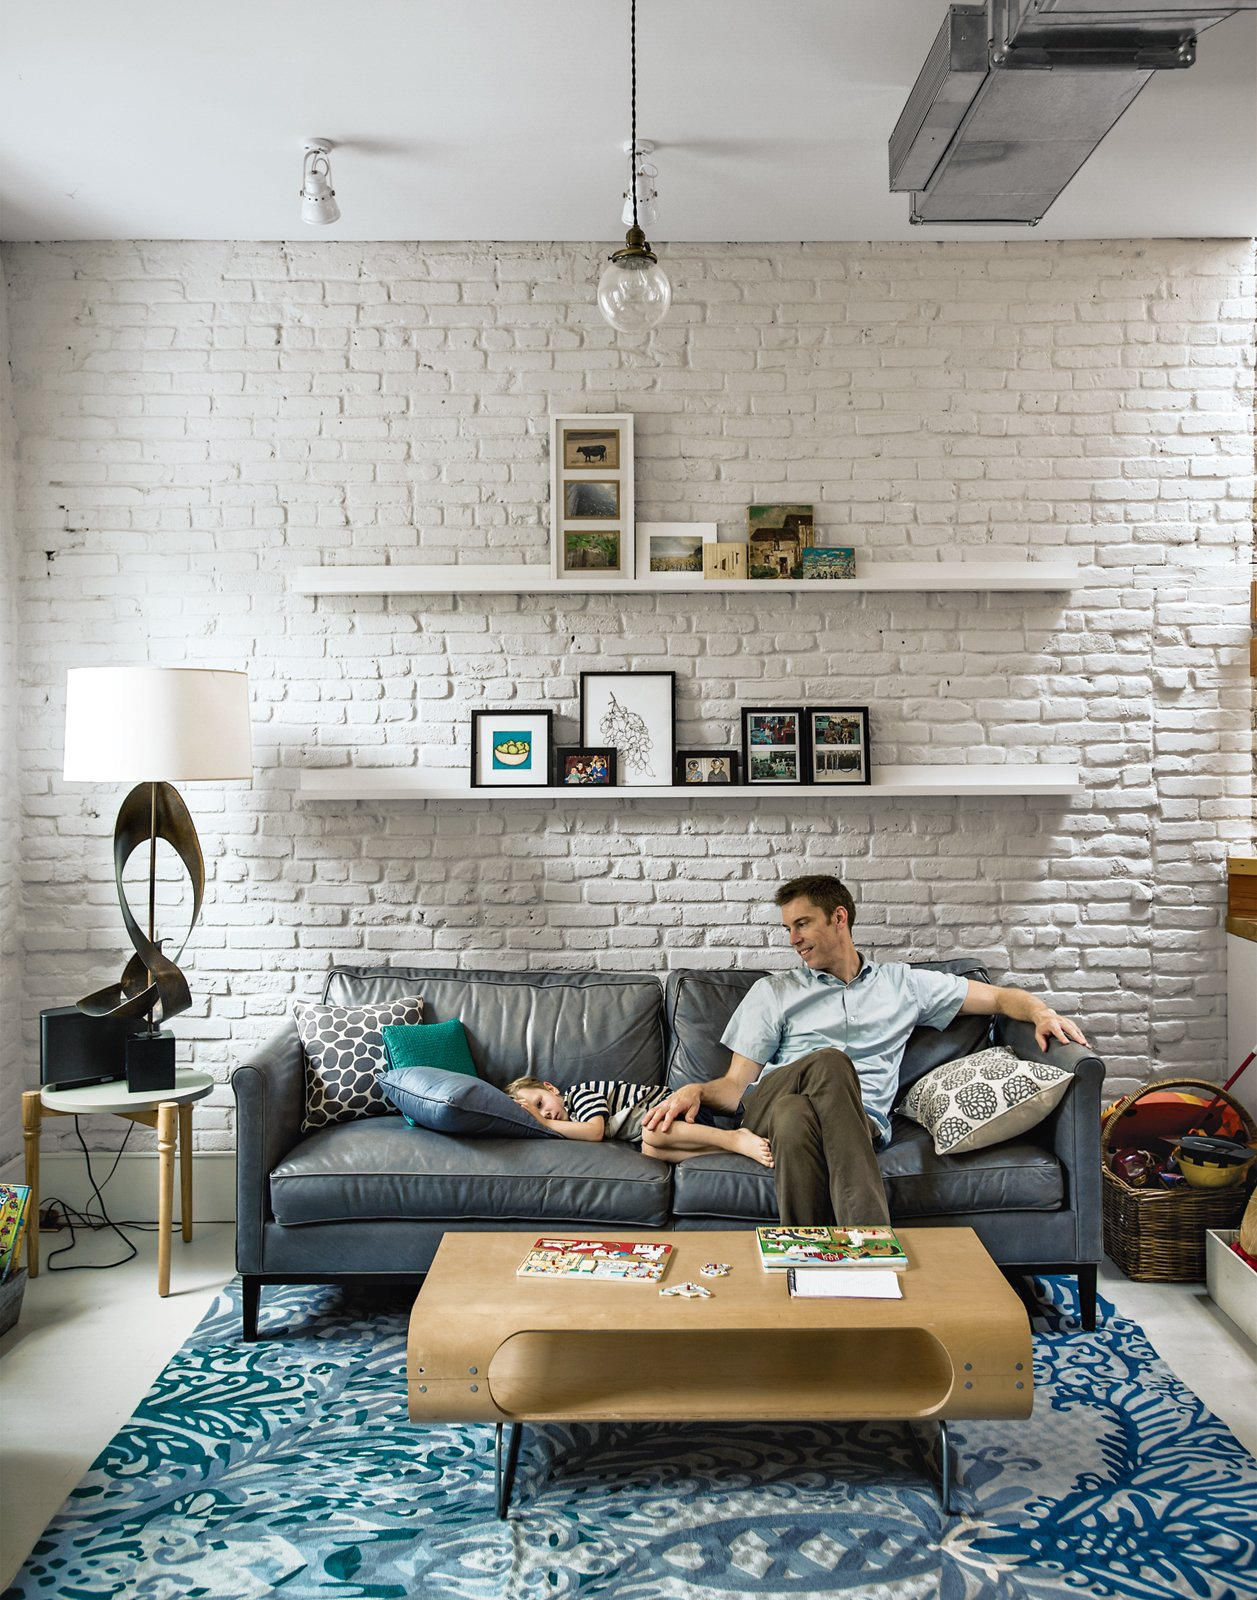 """Bischoff's team retained the exposed brick on the interior, painting much of it white to help the space reflect sunlight. """"There was an interest in having an open, more contemporary layout, but we still wanted some sense of living in this building that's 100 years old,"""" Bischoff says. """"That motivated us a lot to keep the brick. It's a very subtle echo of what the house originally was."""" Enclosing the ductwork would have forced the architects to lower the ceiling or install a subpar air-conditioning system. So it was left exposed, contributing to the floor's loftlike atmosphere. New meets old with the furnishings as well: An antique barbershop pendant provides contrast to a sculptural lamp and a rug from Anthropologie. Investment buys were made with budget in mind, like the leather sofa scored at ABC Carpet & Home's outlet store. Tagged: Living Room, Sofa, Coffee Tables, End Tables, Pendant Lighting, Rug Floor, and Table Lighting.  Photo 6 of 9 in The Brownstone Baked to Perfection"""